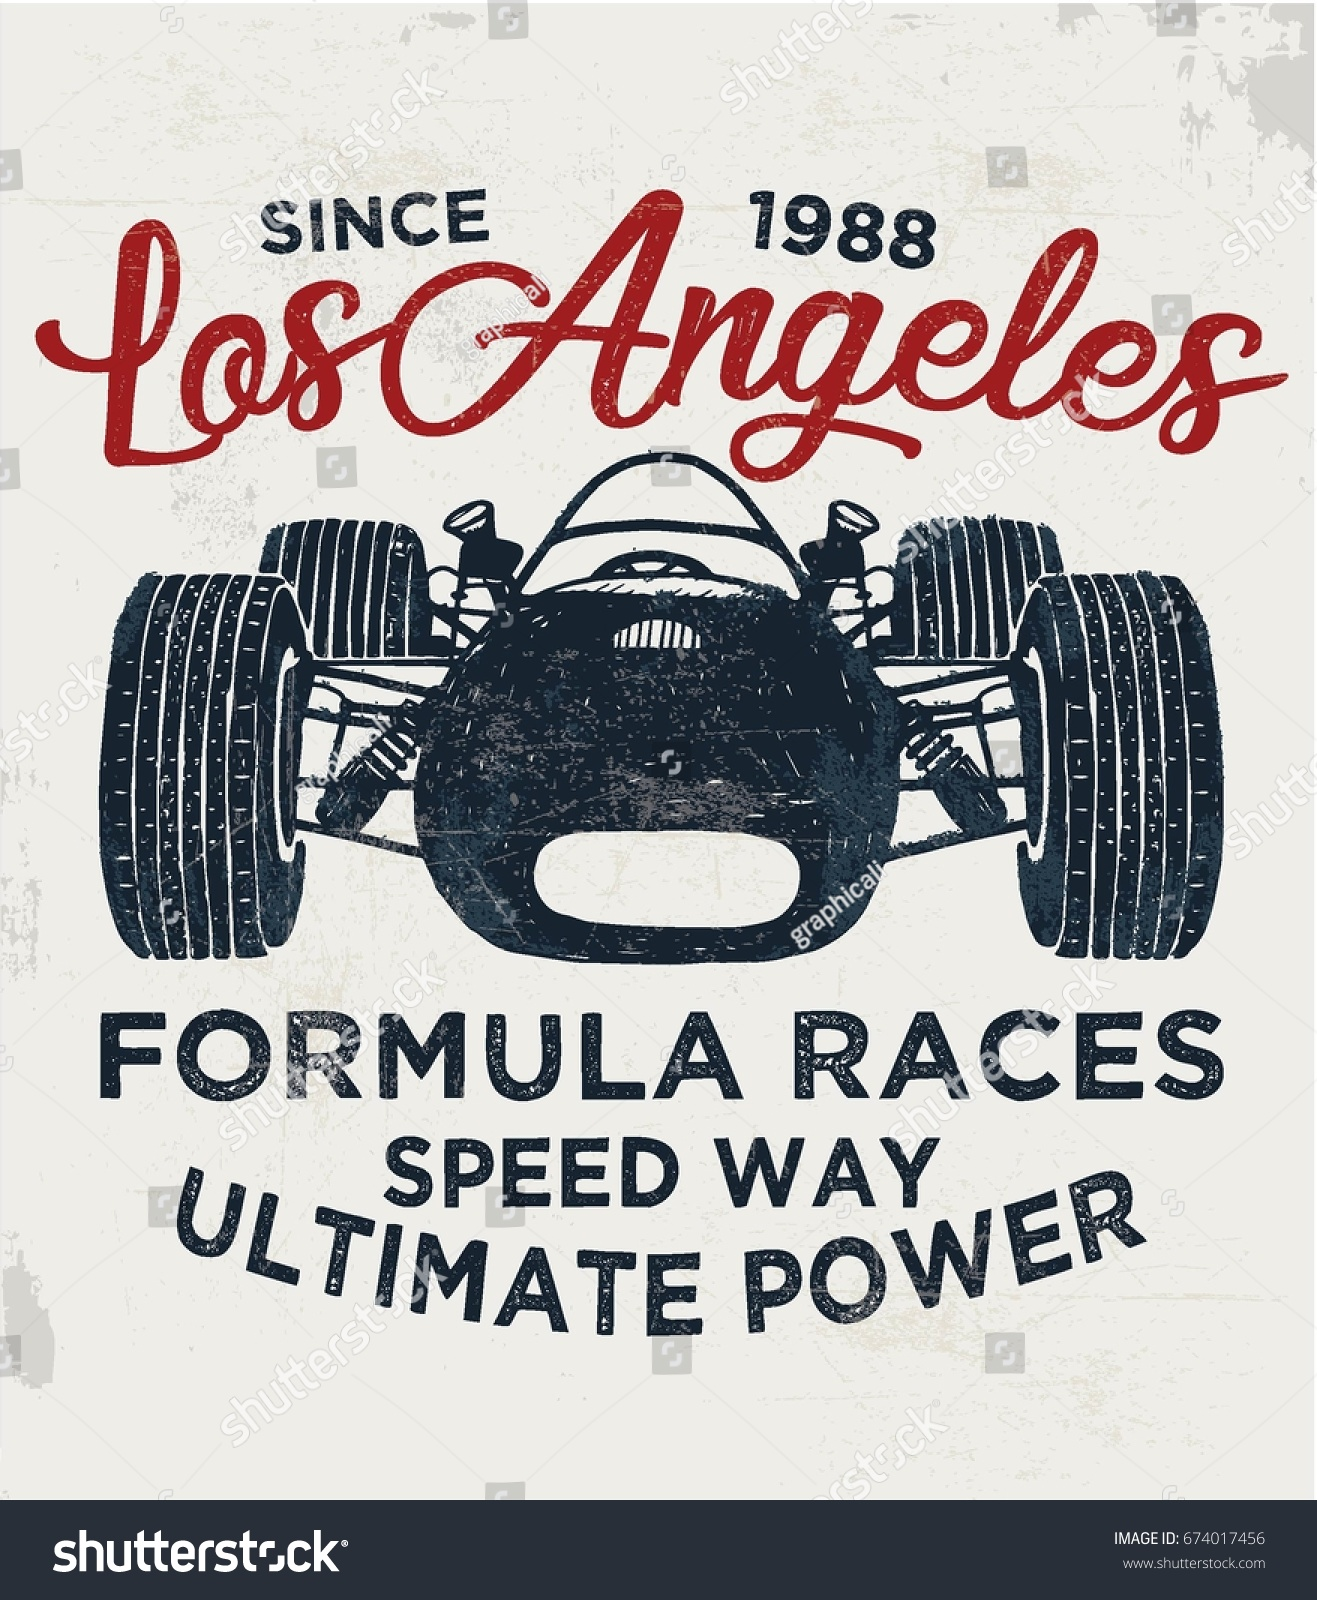 Cool Vintage Race Car Illustration Vector Stock Vector Royalty Free 674017456